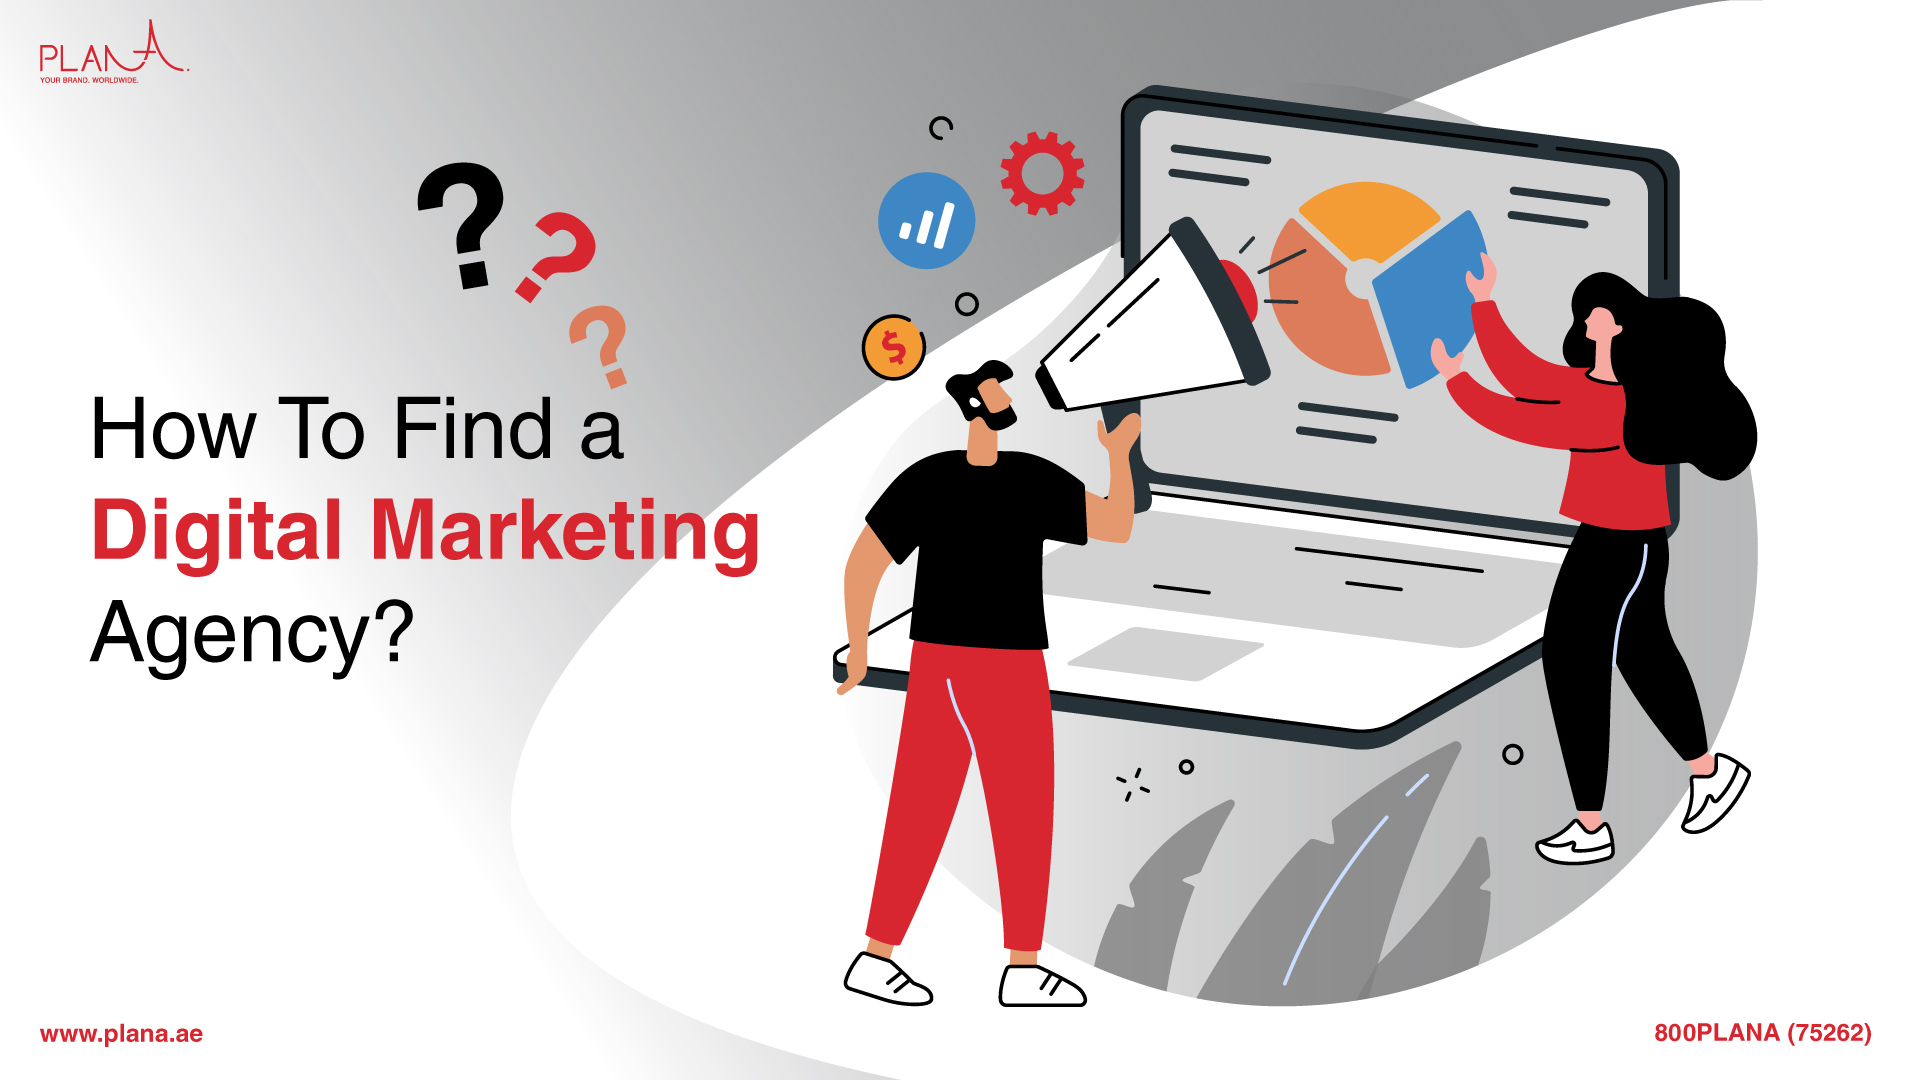 How to Find a Digital Marketing Agency?